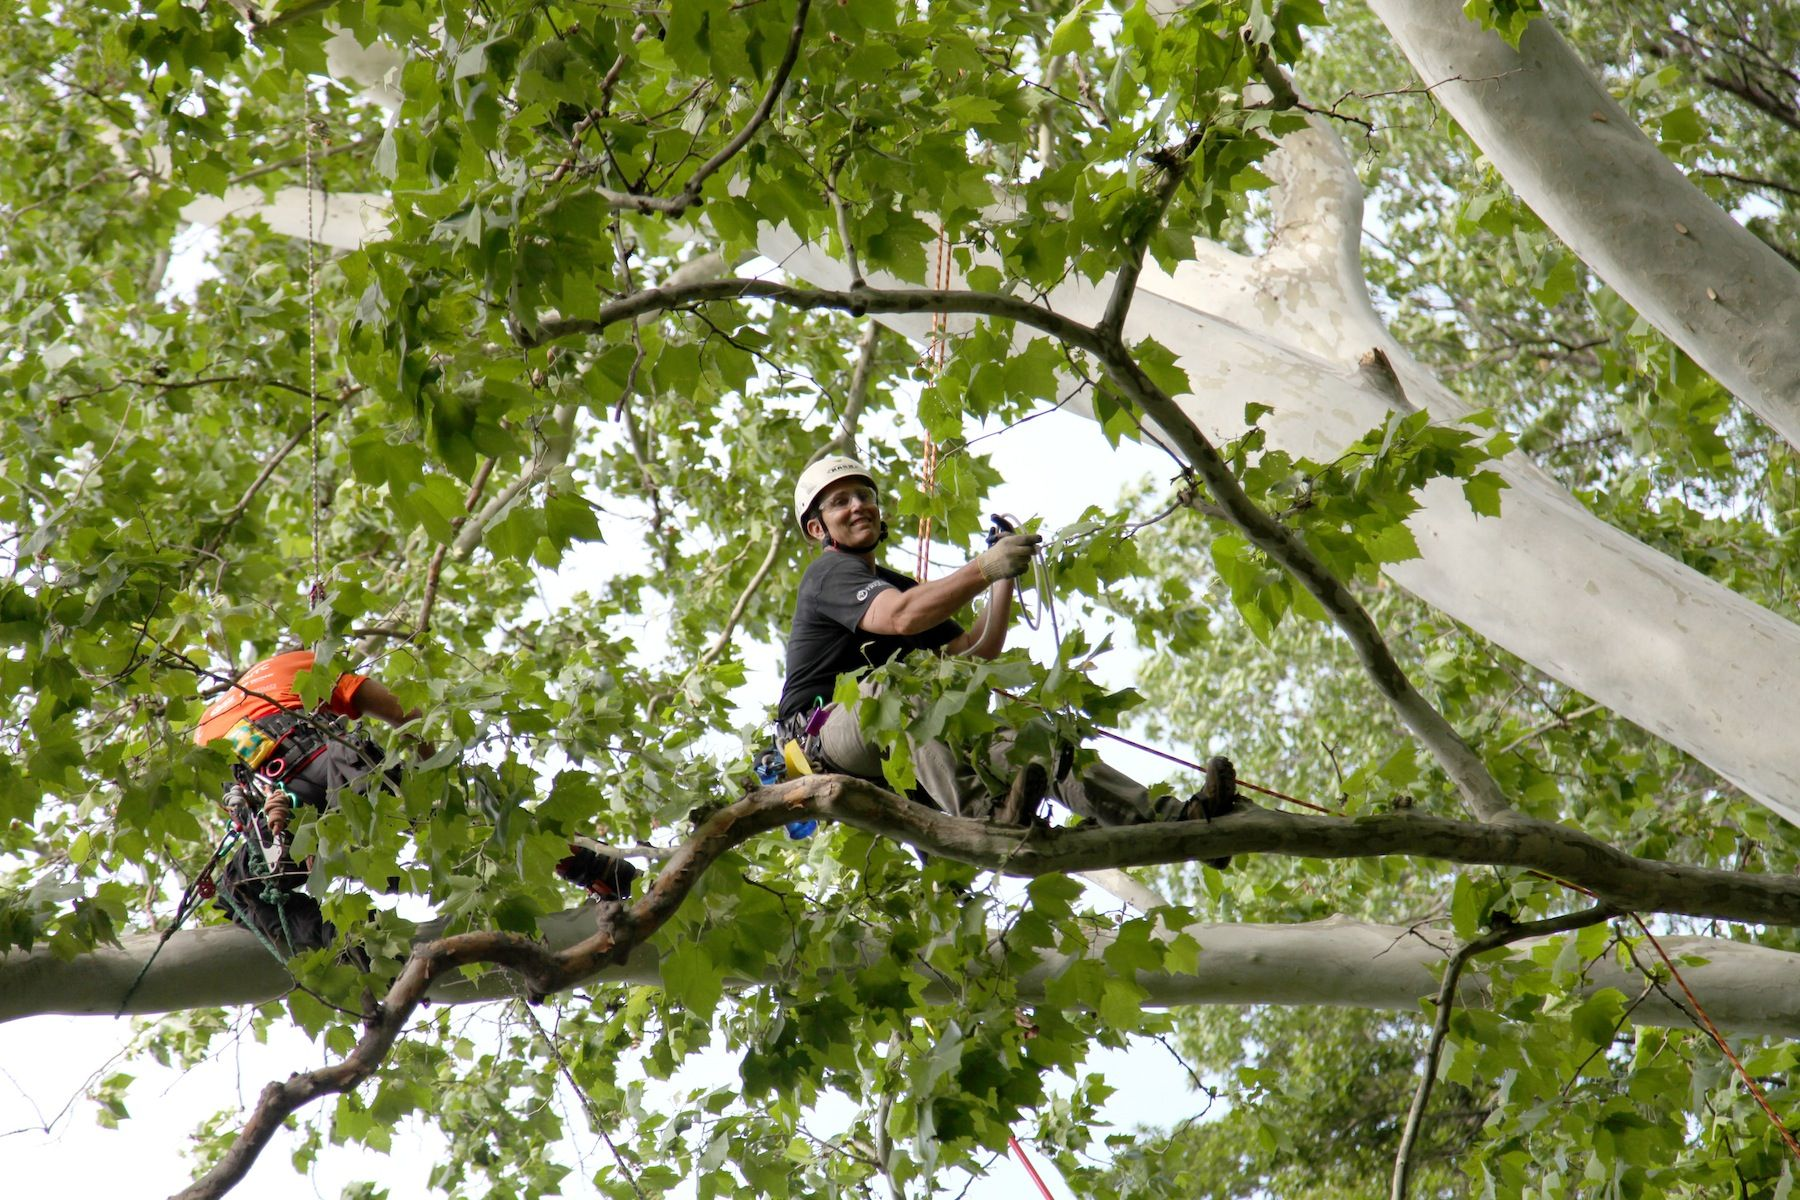 International Society of Arboriculture Midwest Chapter